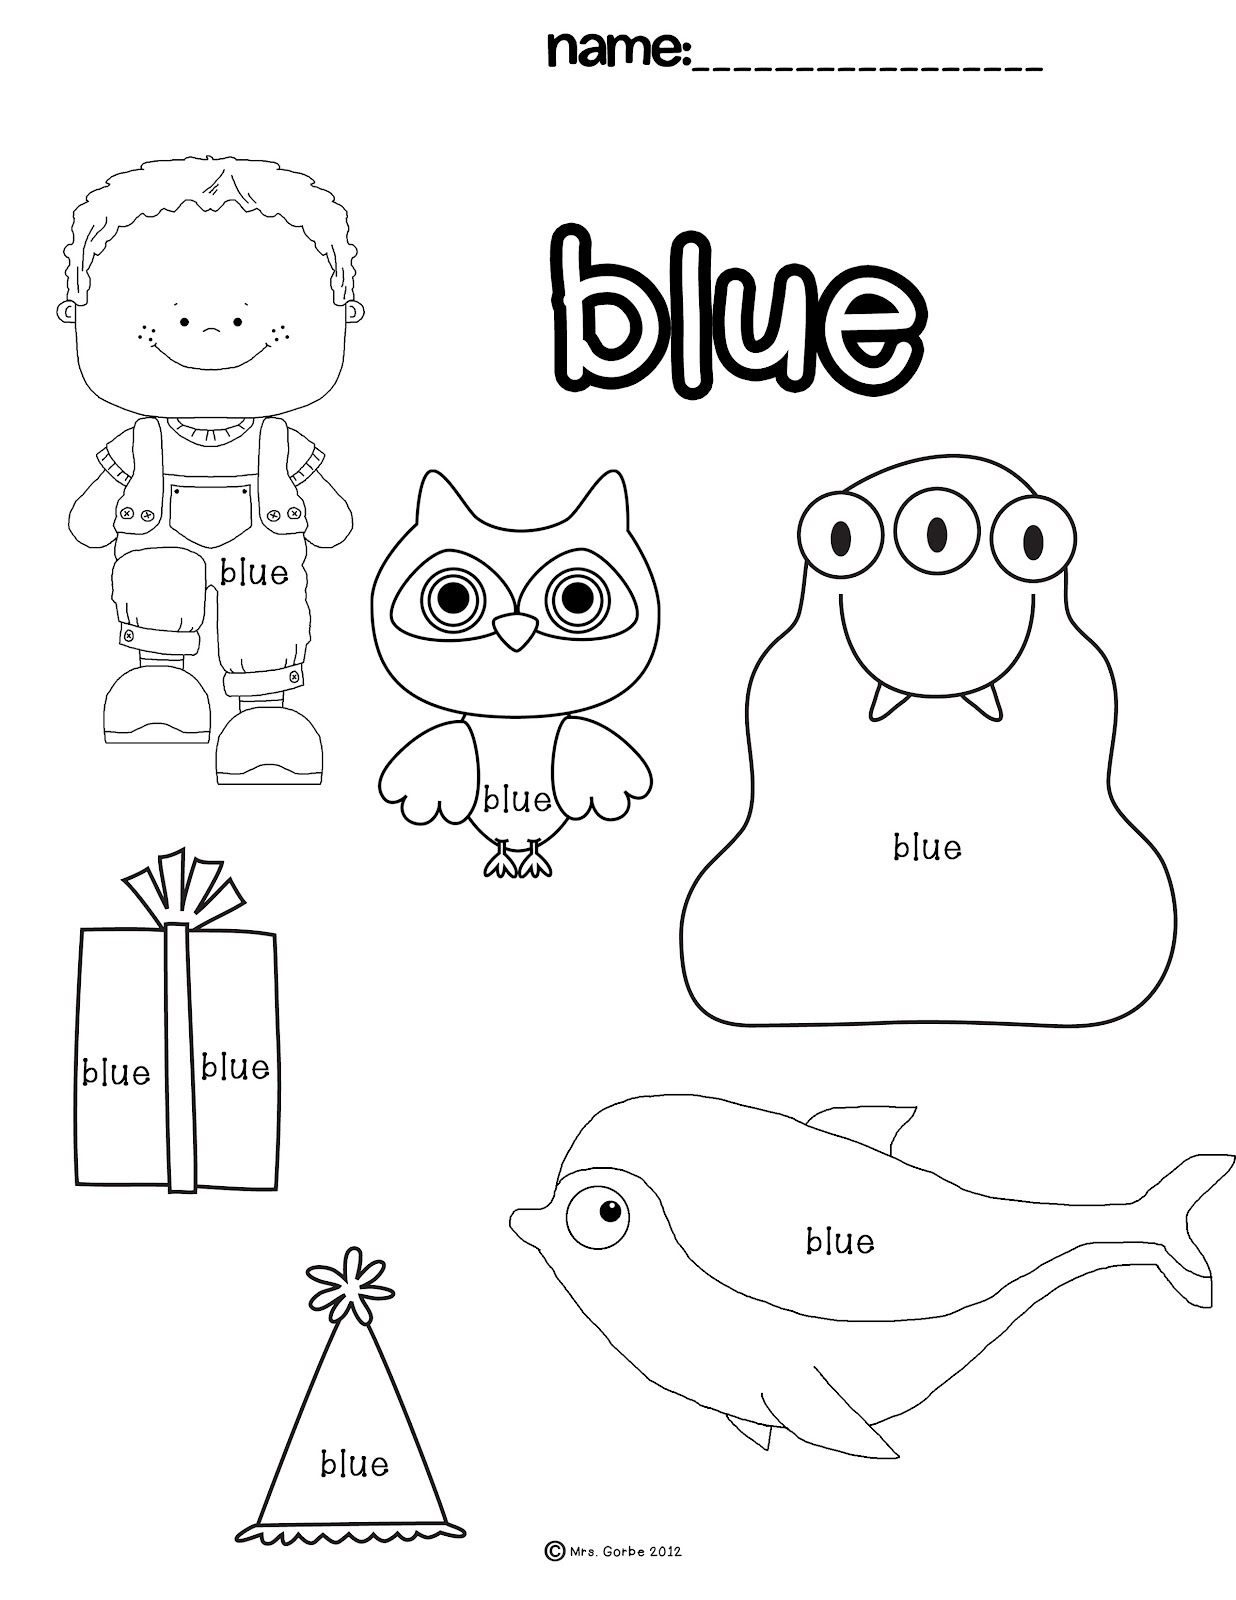 Color blue worksheets preschool sketch coloring page for Blue coloring page